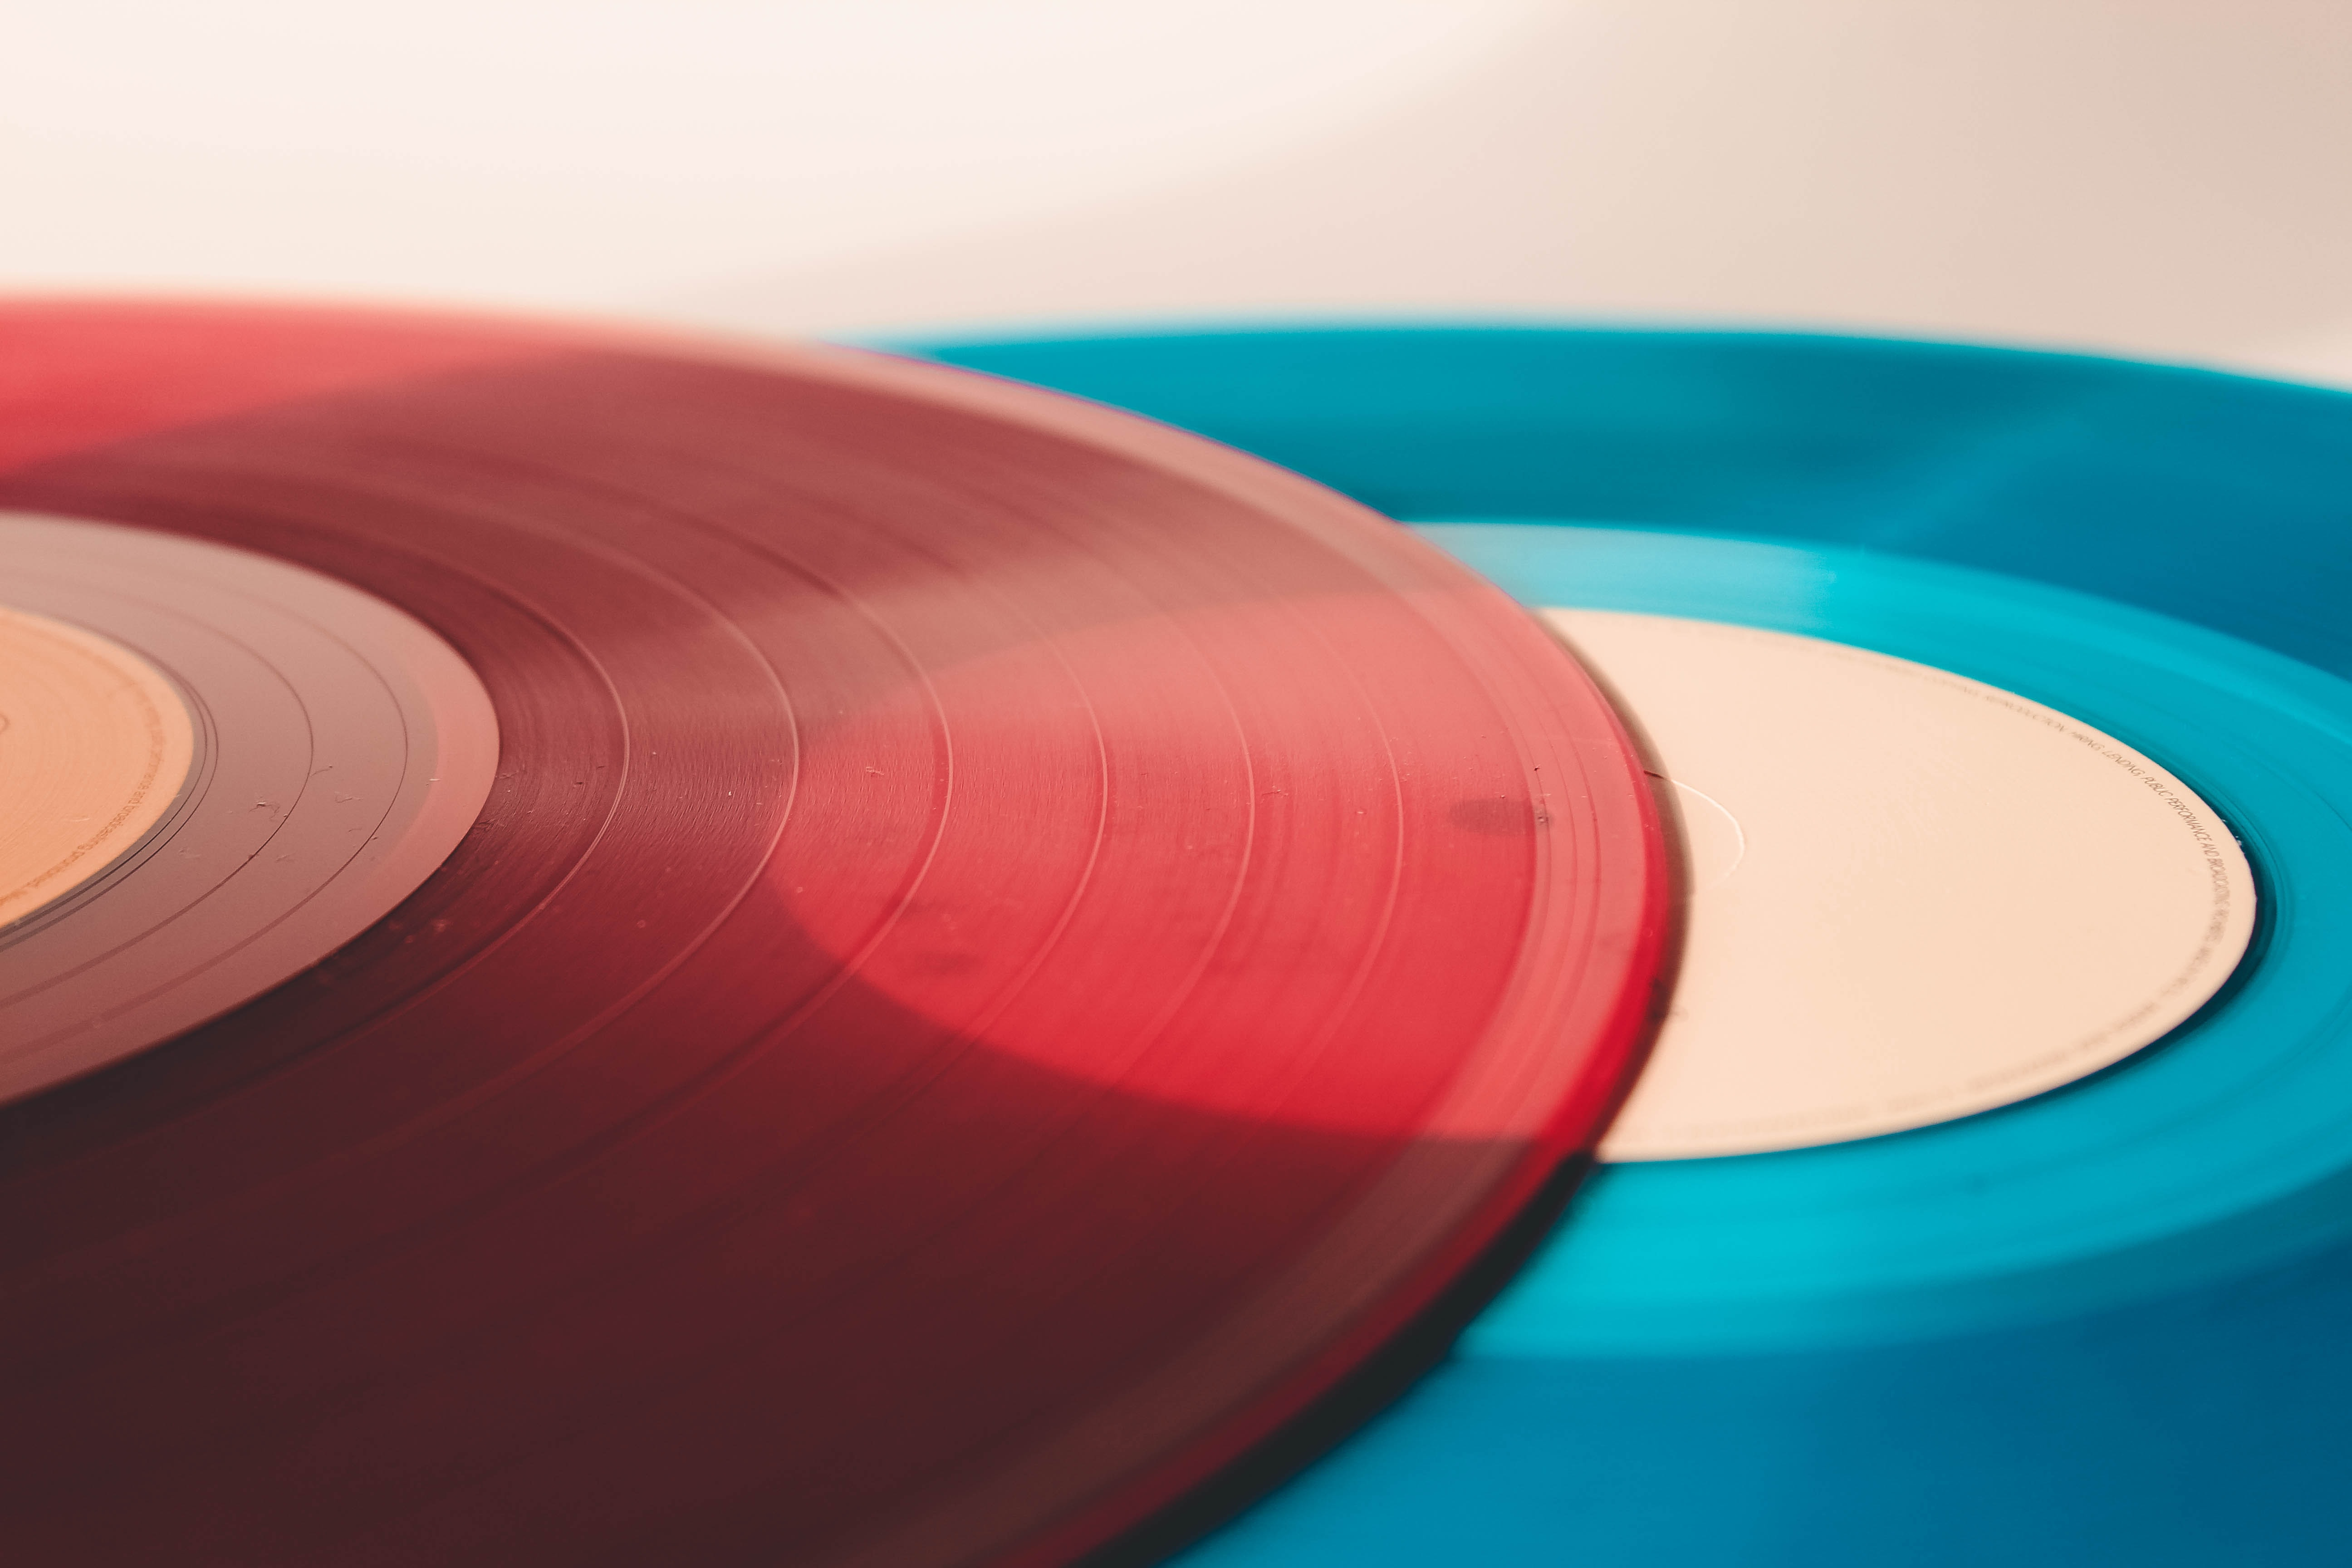 red and blue discs